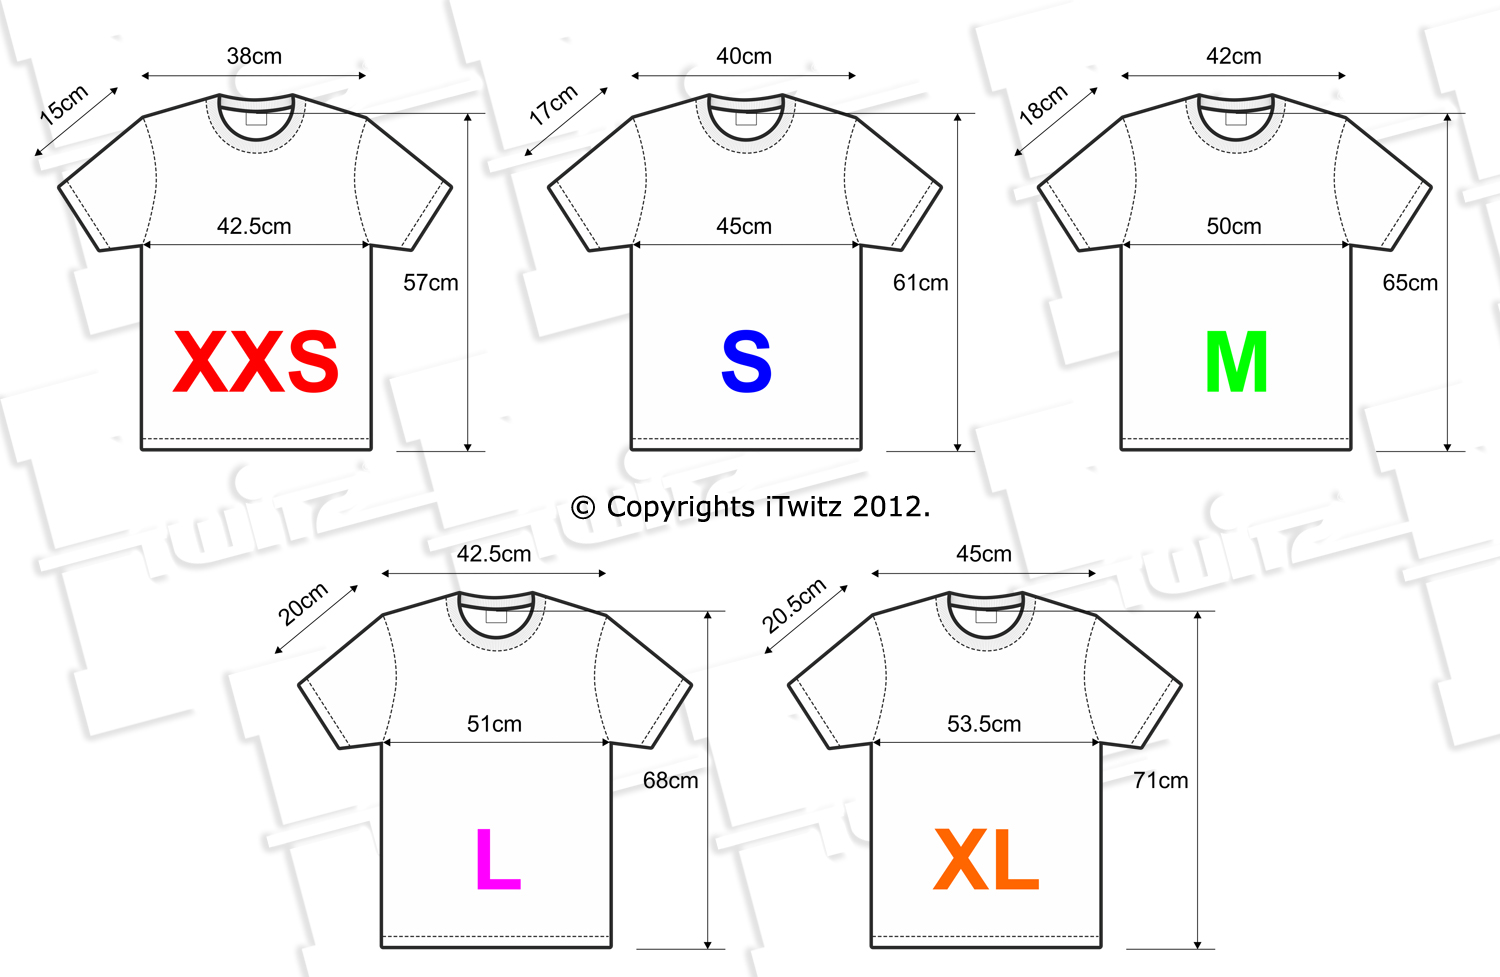 Dec 15,  · newbez.ml Sizing Chart - I love this website and frequently purchase shirts. While the cut of the men's and women's shirts are different, even the specific measurements are quite different. When looking at chest size, a Men's Medium is between a Women's Medium and Large, but the length on the Men's Medium is the same as the Women's extra large.